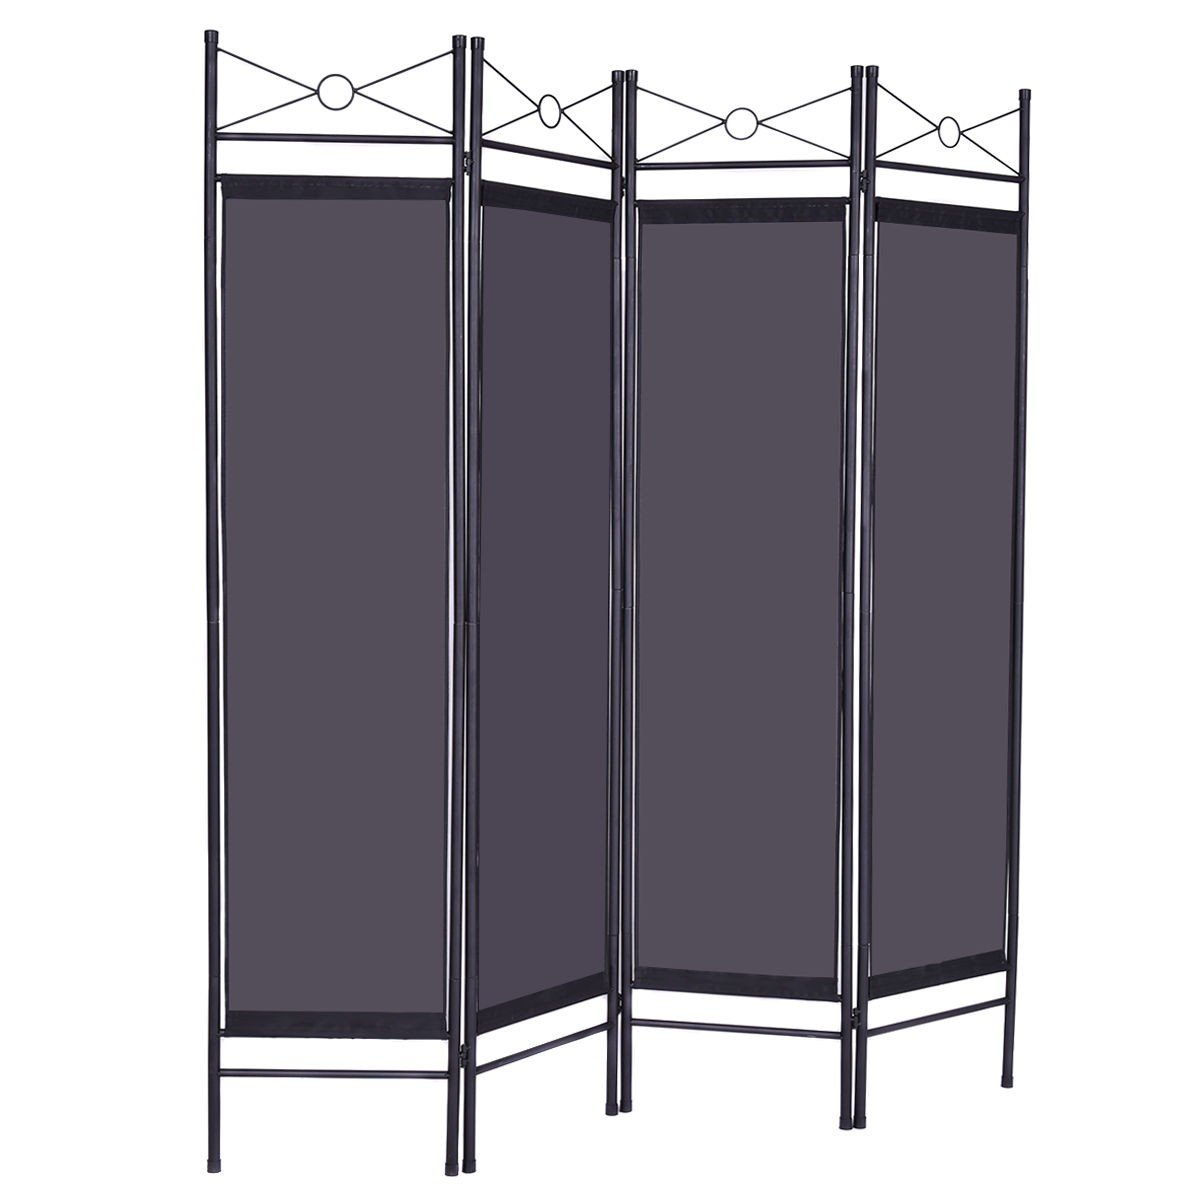 4 Panel Room Divider Privacy Folding Screen Home Office Fabric Metal Frame 3 Color